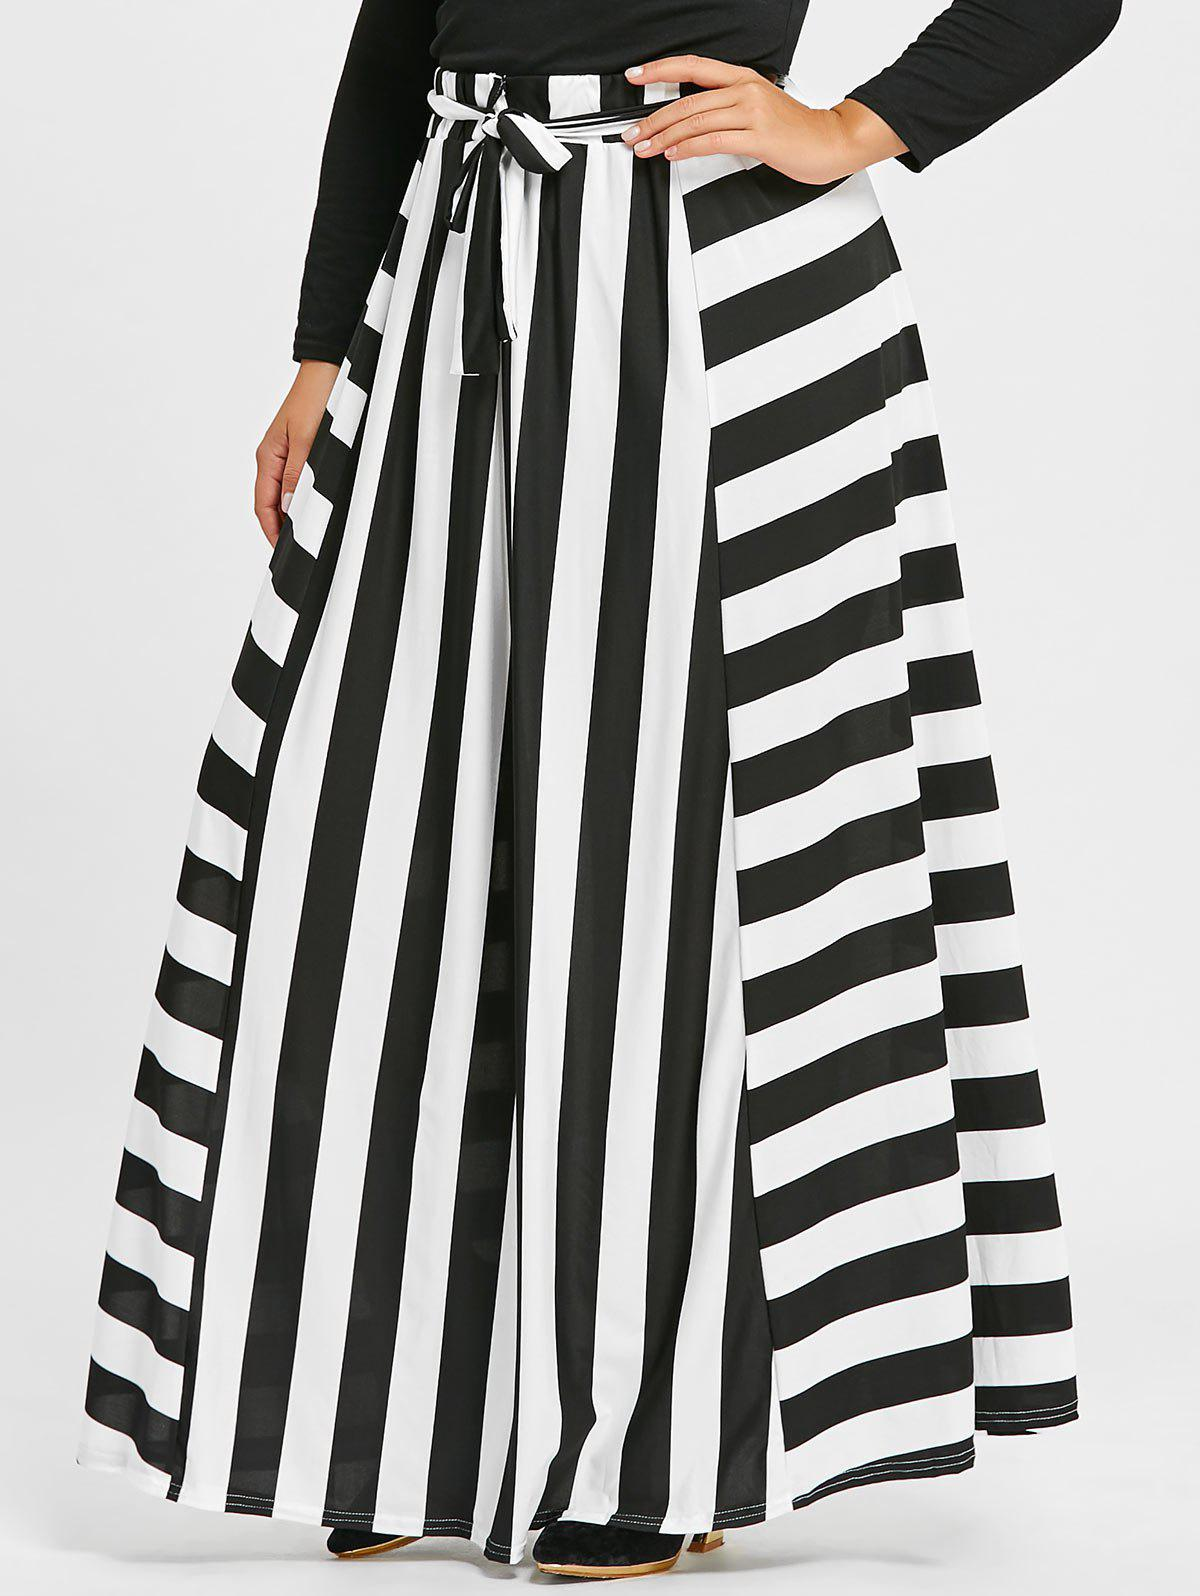 Plus Size Stripe High Waist Maxi SkirtWOMEN<br><br>Size: 3XL; Color: STRIPE; Material: Polyester; Length: Floor-Length; Silhouette: A-Line; Pattern Type: Striped; Season: Fall,Winter; With Belt: No; Weight: 0.4500kg; Package Contents: 1 x Skirt 1 x Belt;